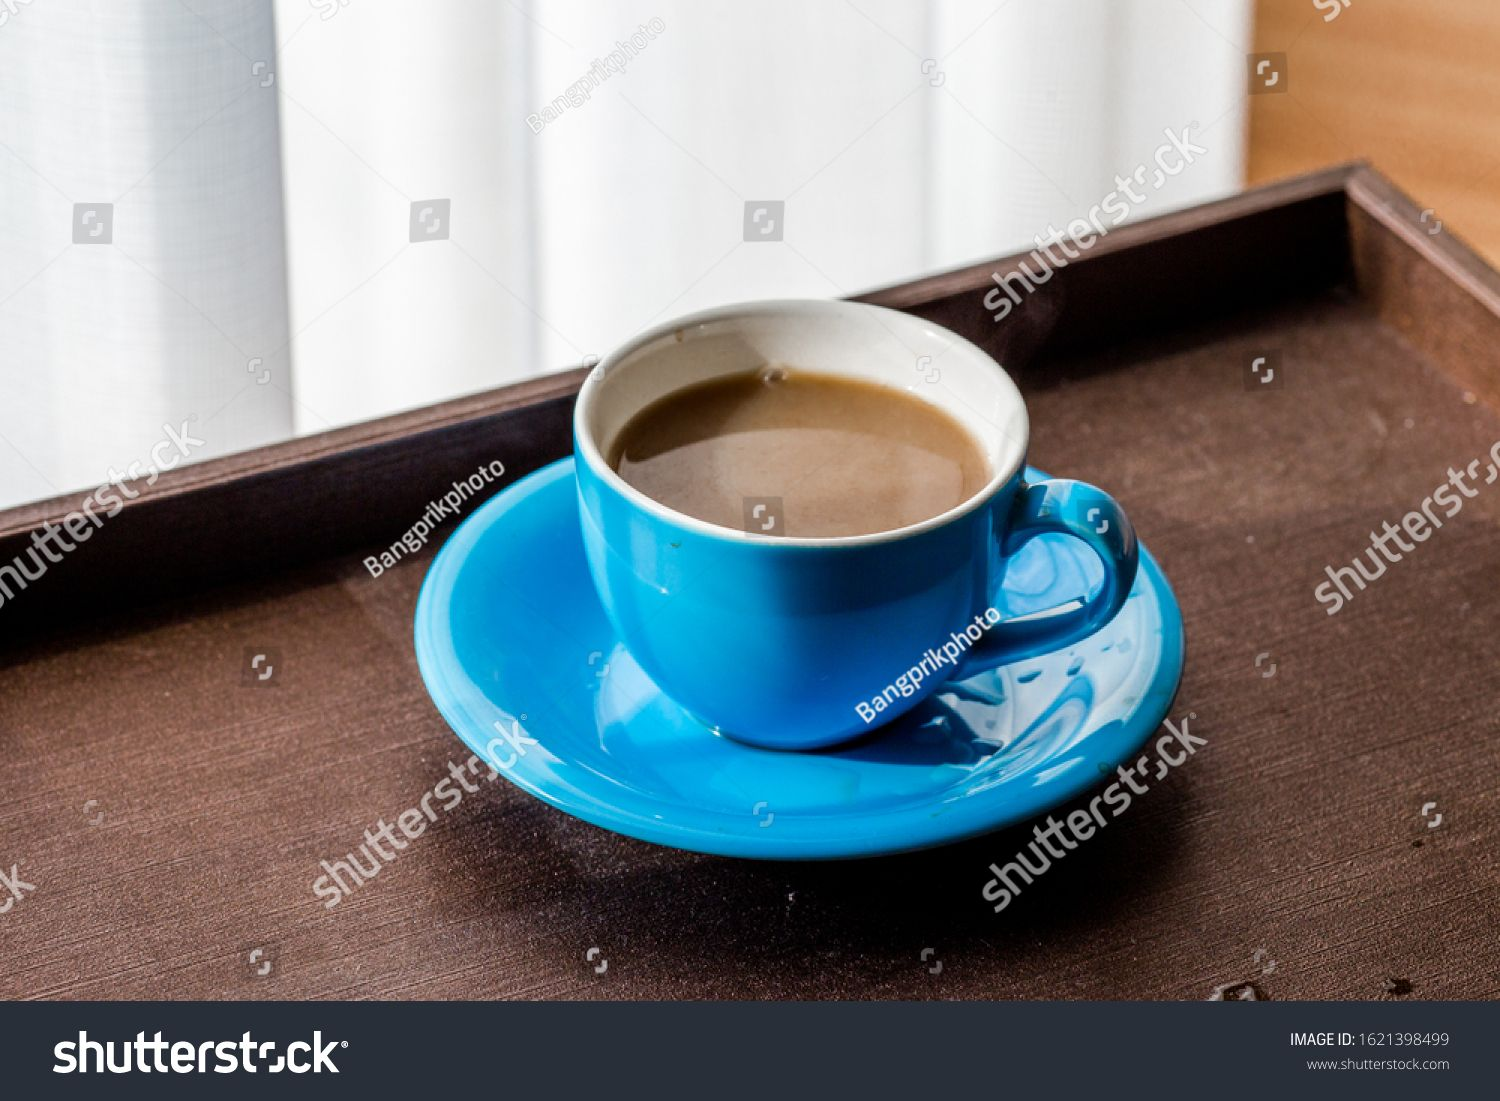 Blurred background view of a mug or coffee cup, a cup of water or a drink on the table, for customer service in a room or restaurant #Sponsored , #Affiliate, #mug#coffee#cup#Blurred